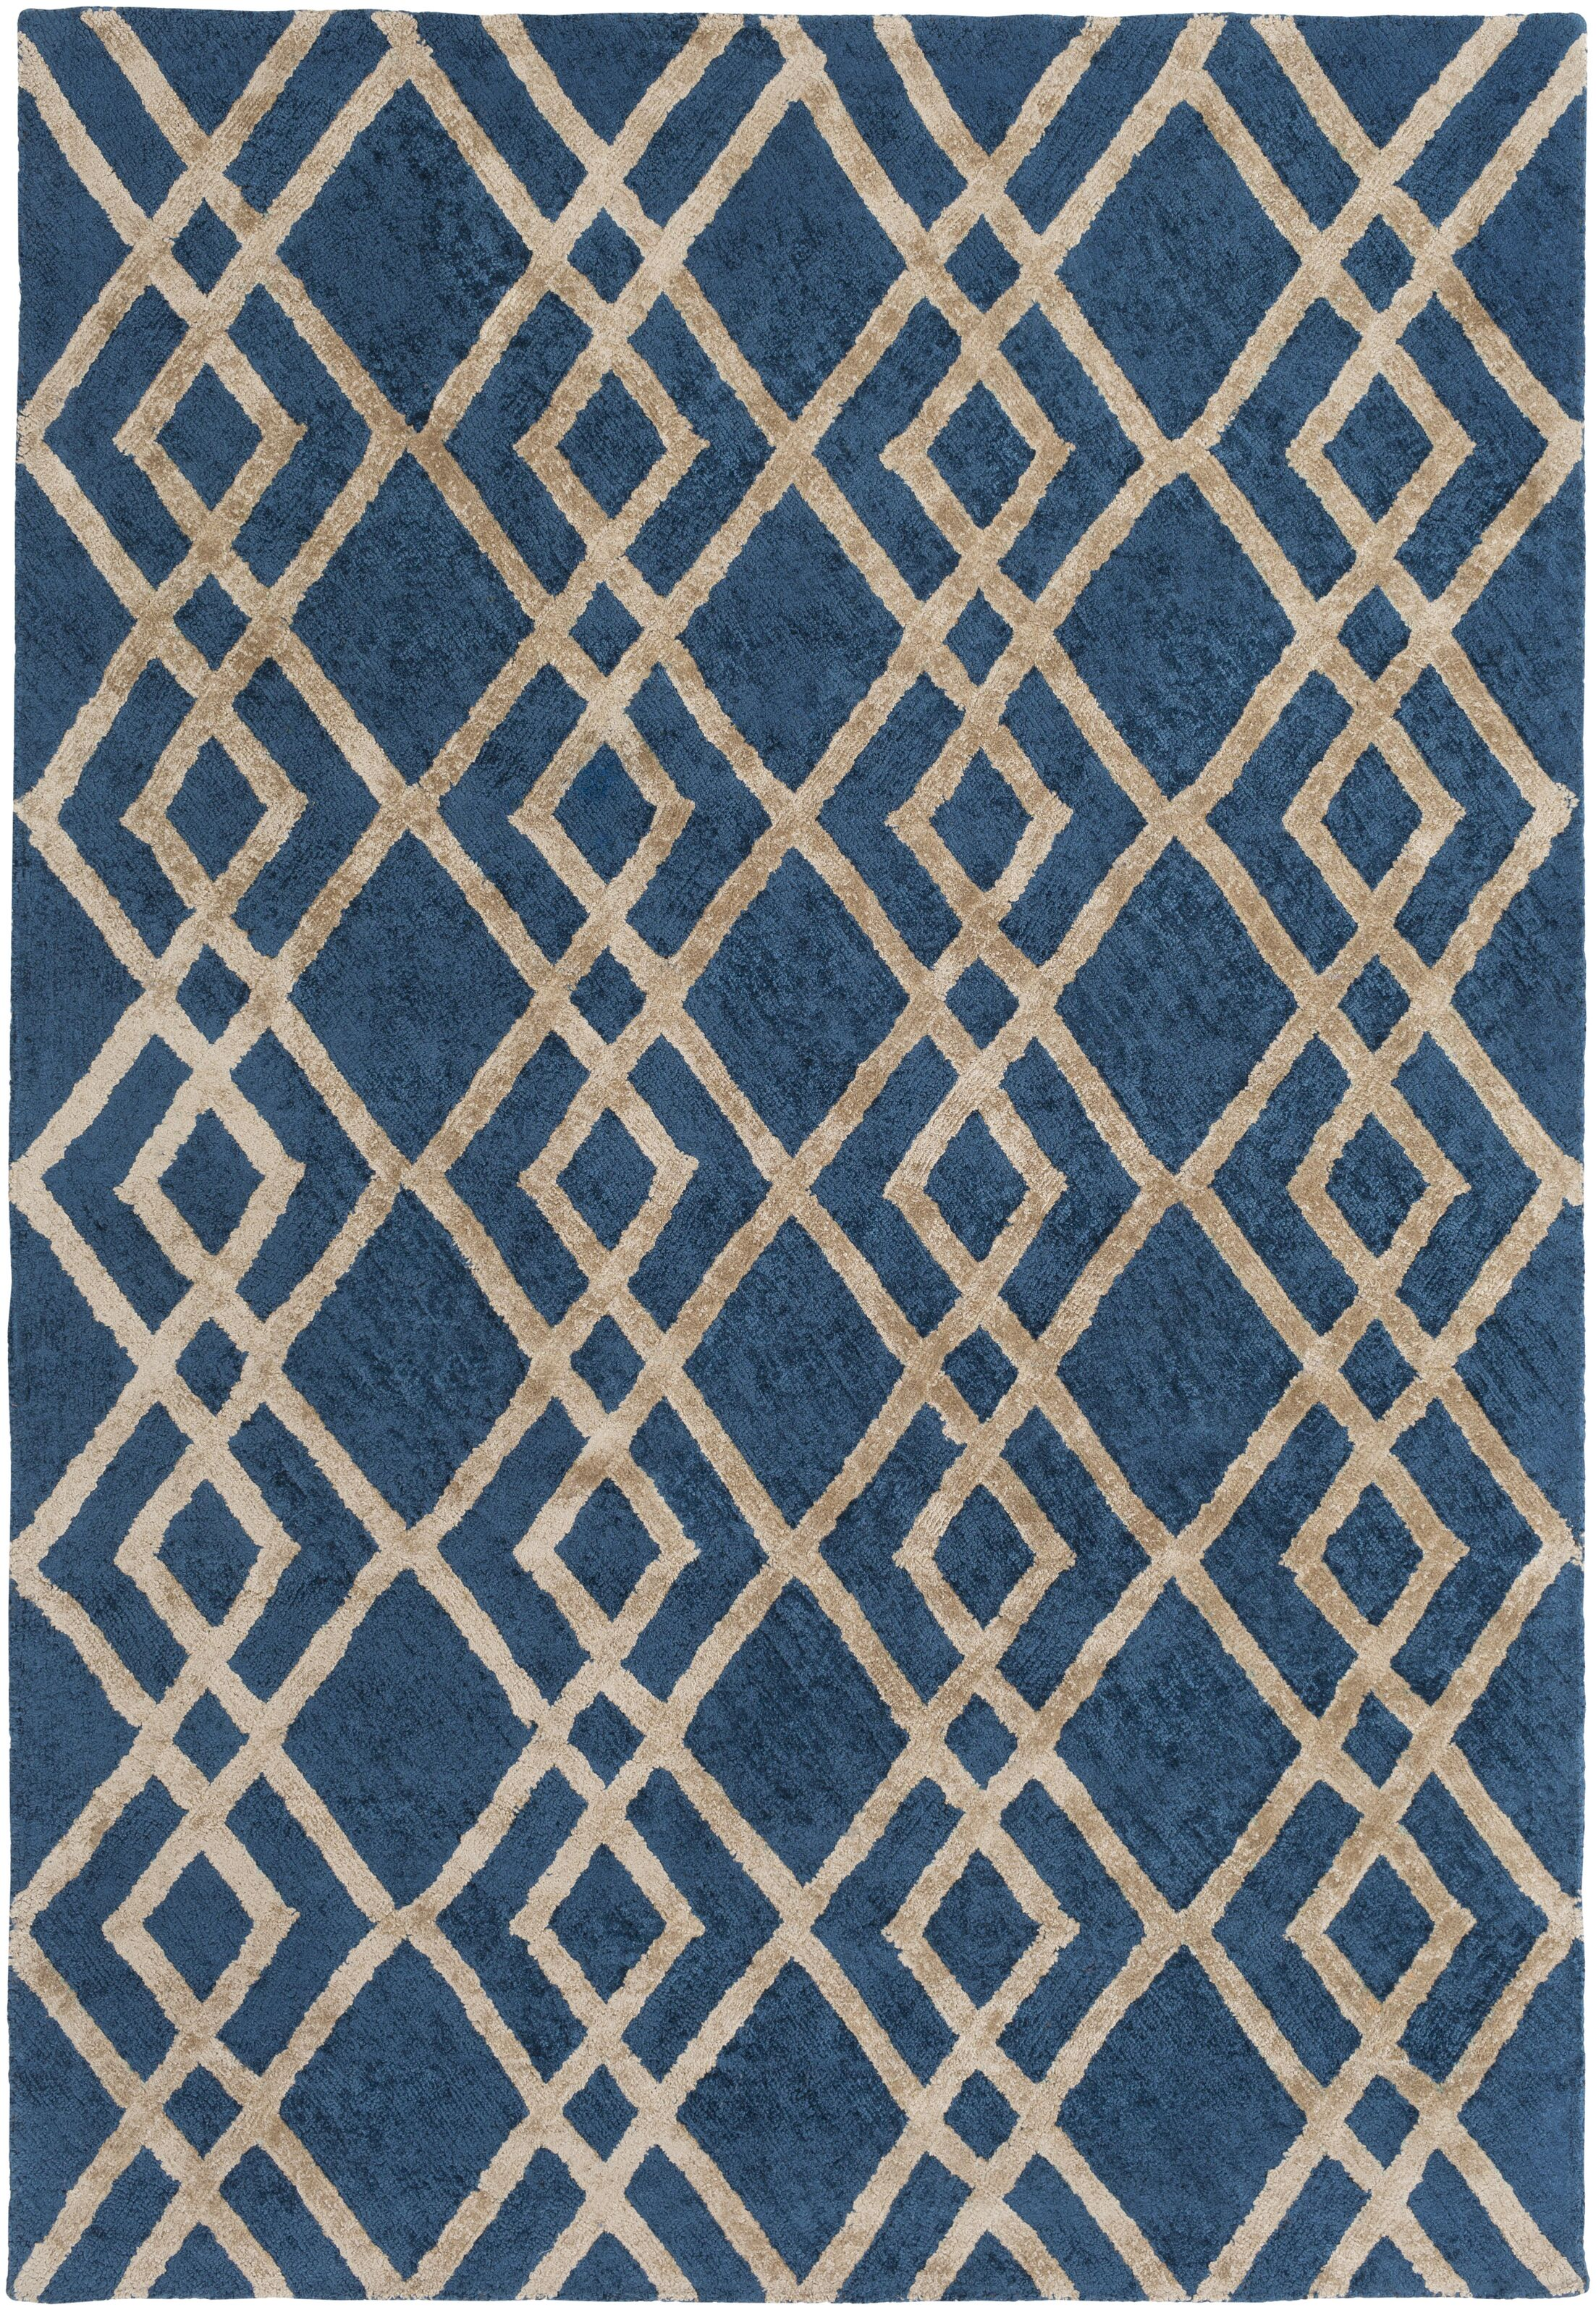 Bradt Hand-Tufted Area Rug Rug Size: Rectangle 5' x 7'6